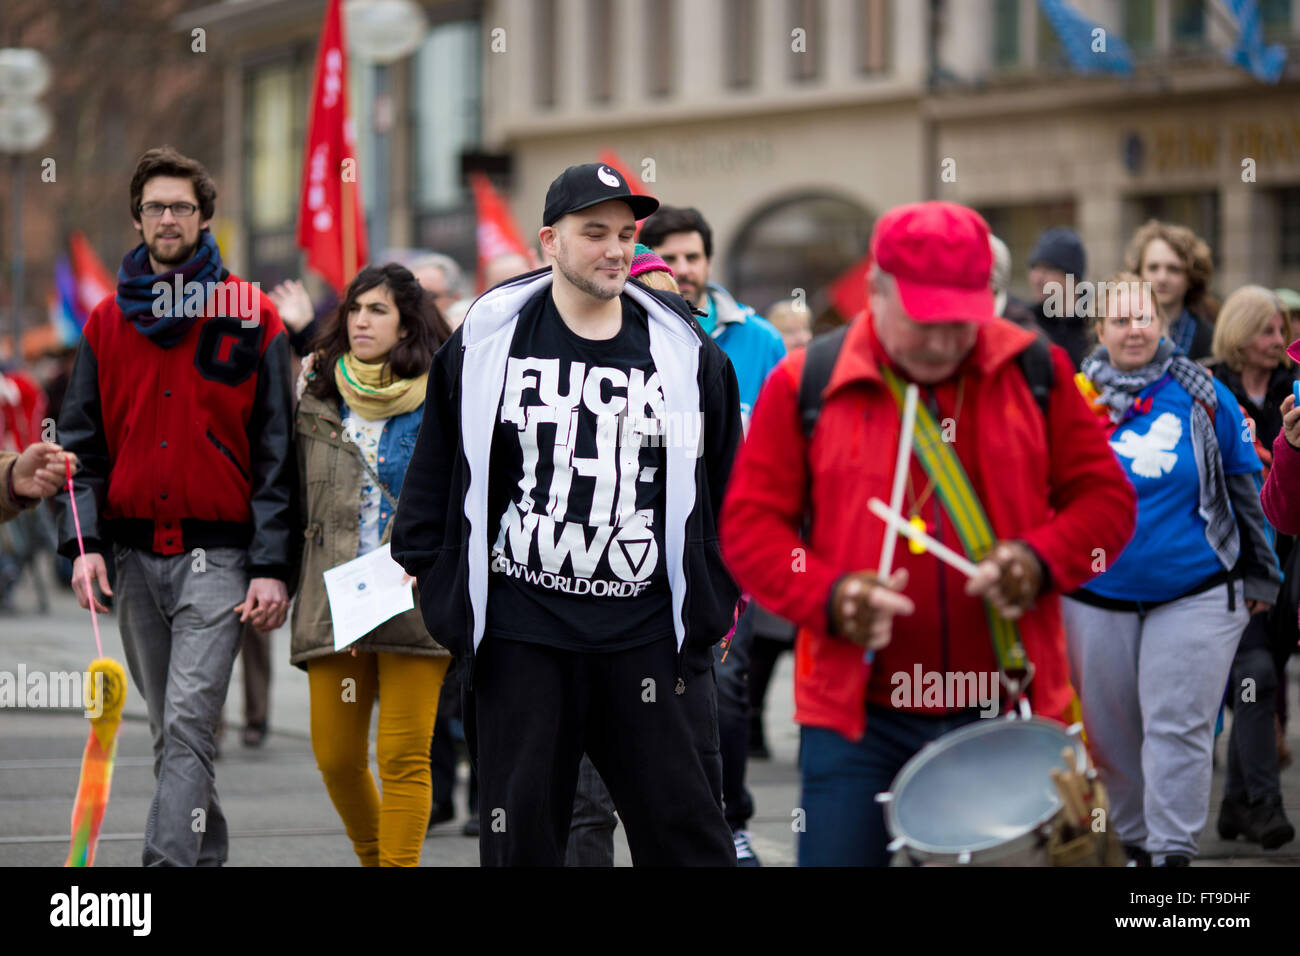 Munich, Germany. 26th March, 2016. 500 people rallied through Munich on the traditional easter-peace march. The Stock Photo